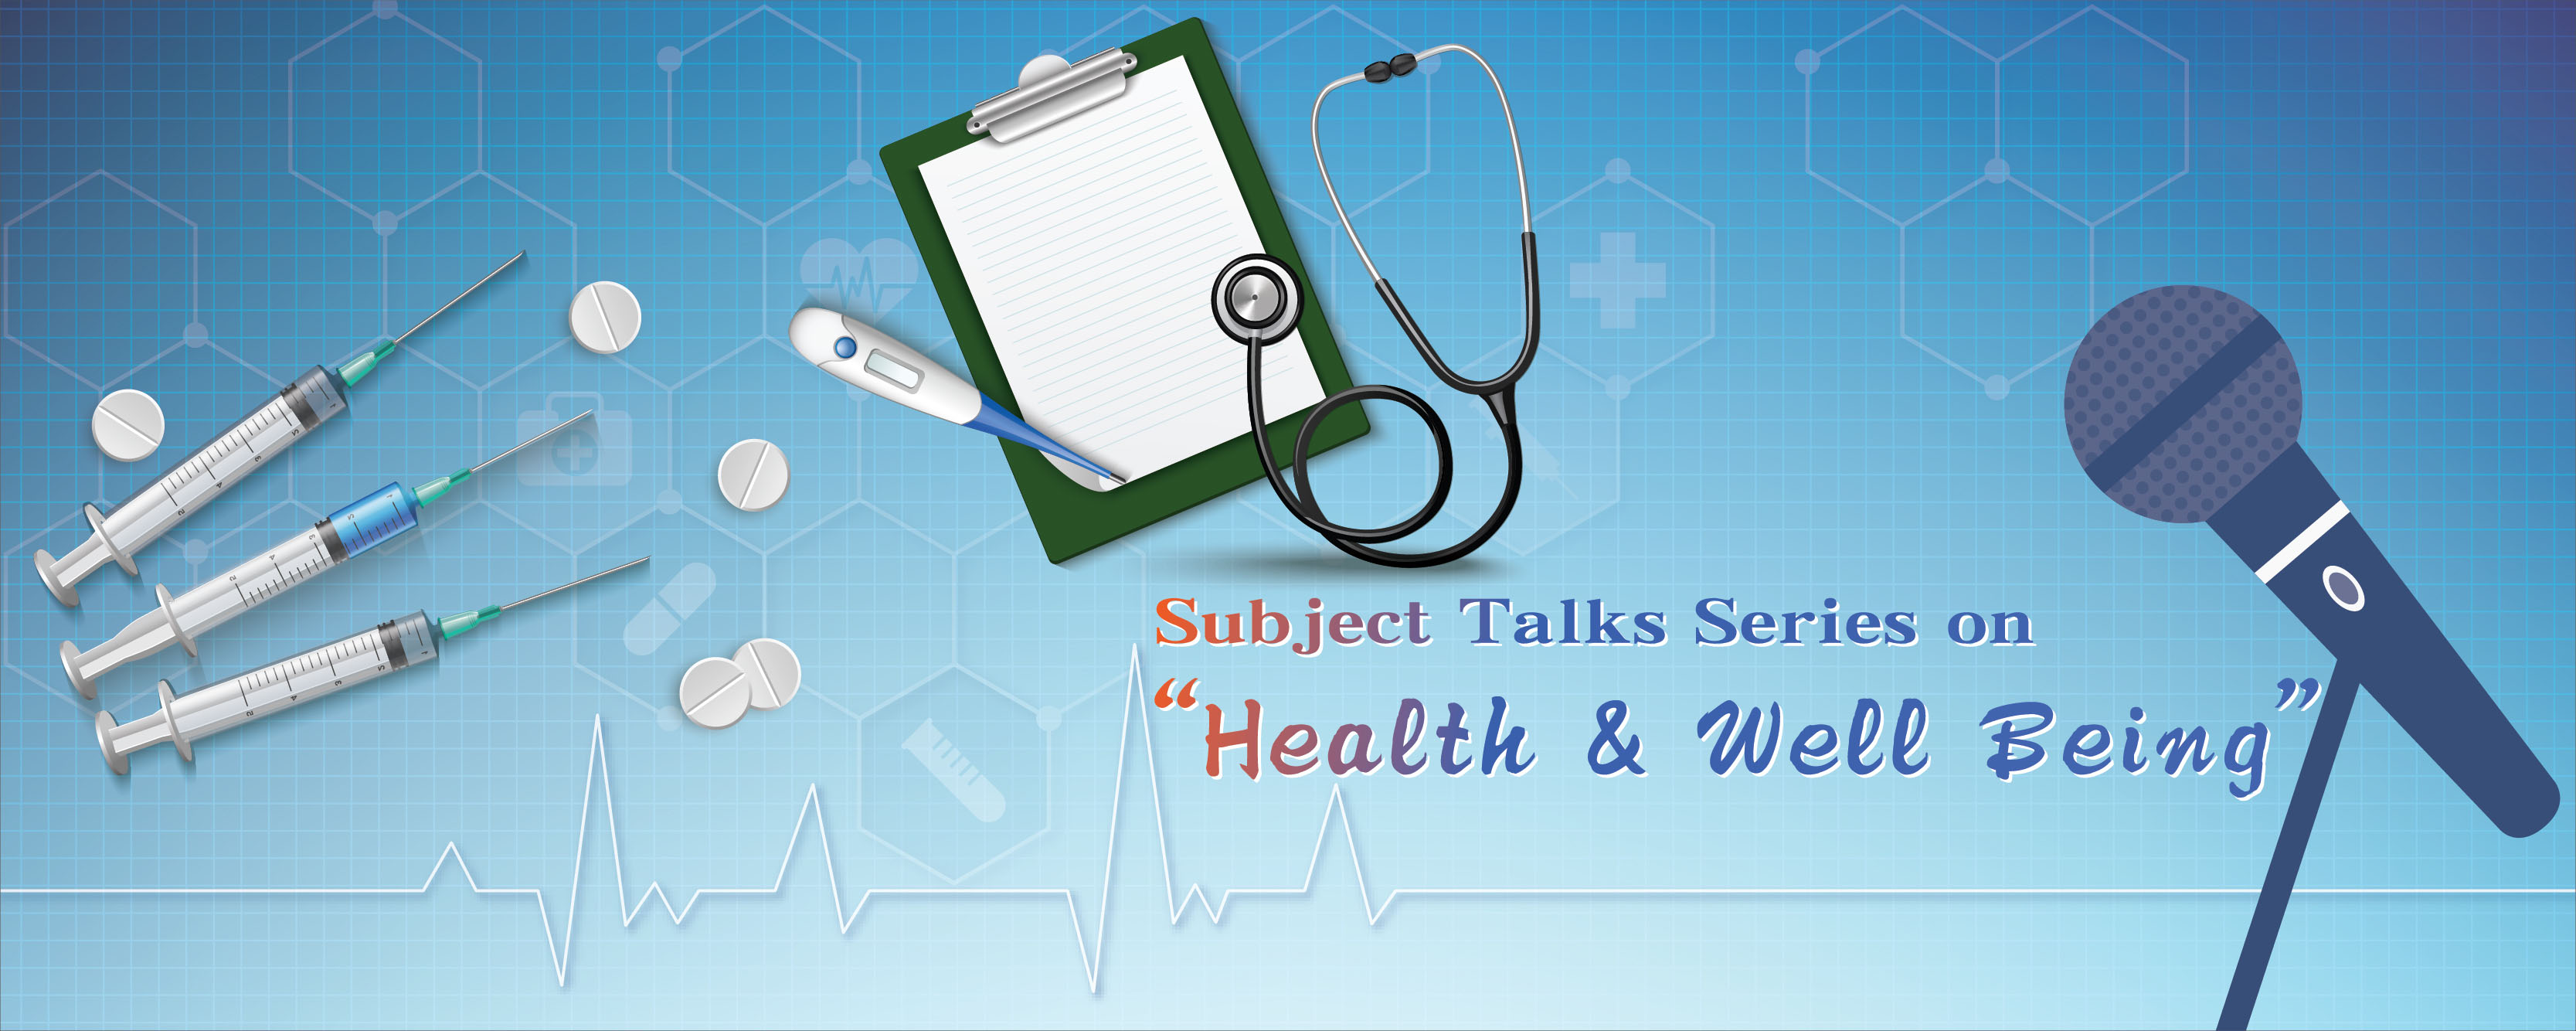 "Subject Talks Series on ""Health & Well Being""(conducted in Chinese)"